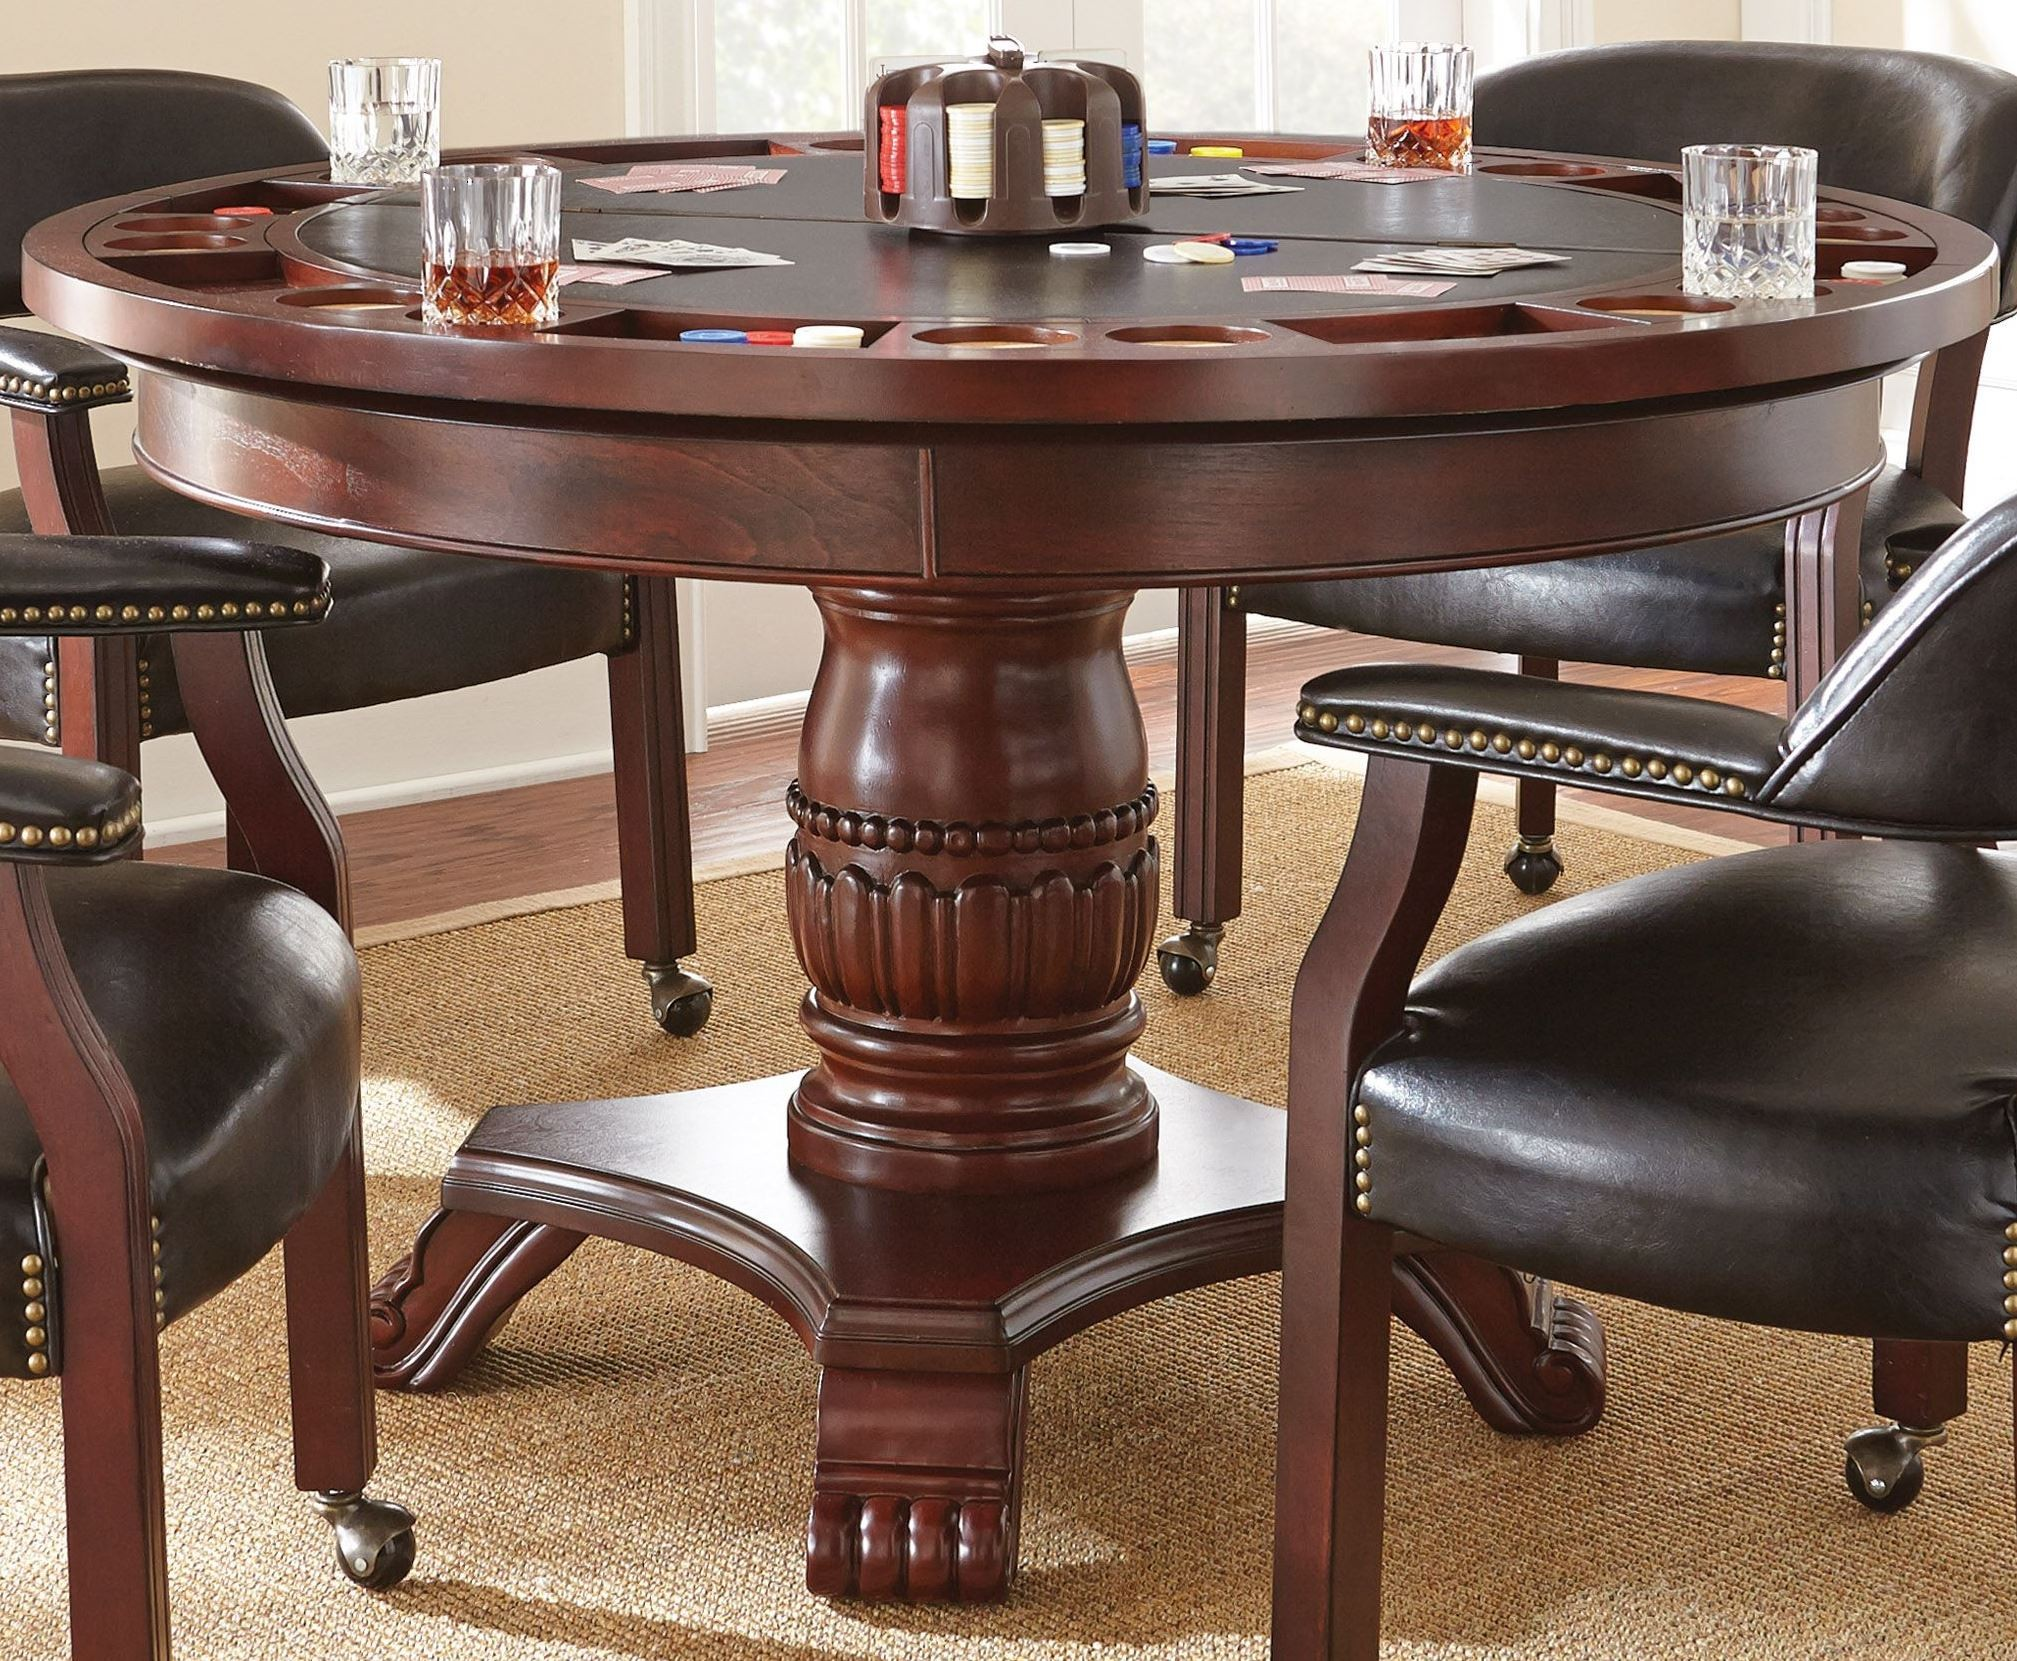 Tournament Black Round Folding Game Table From Steve